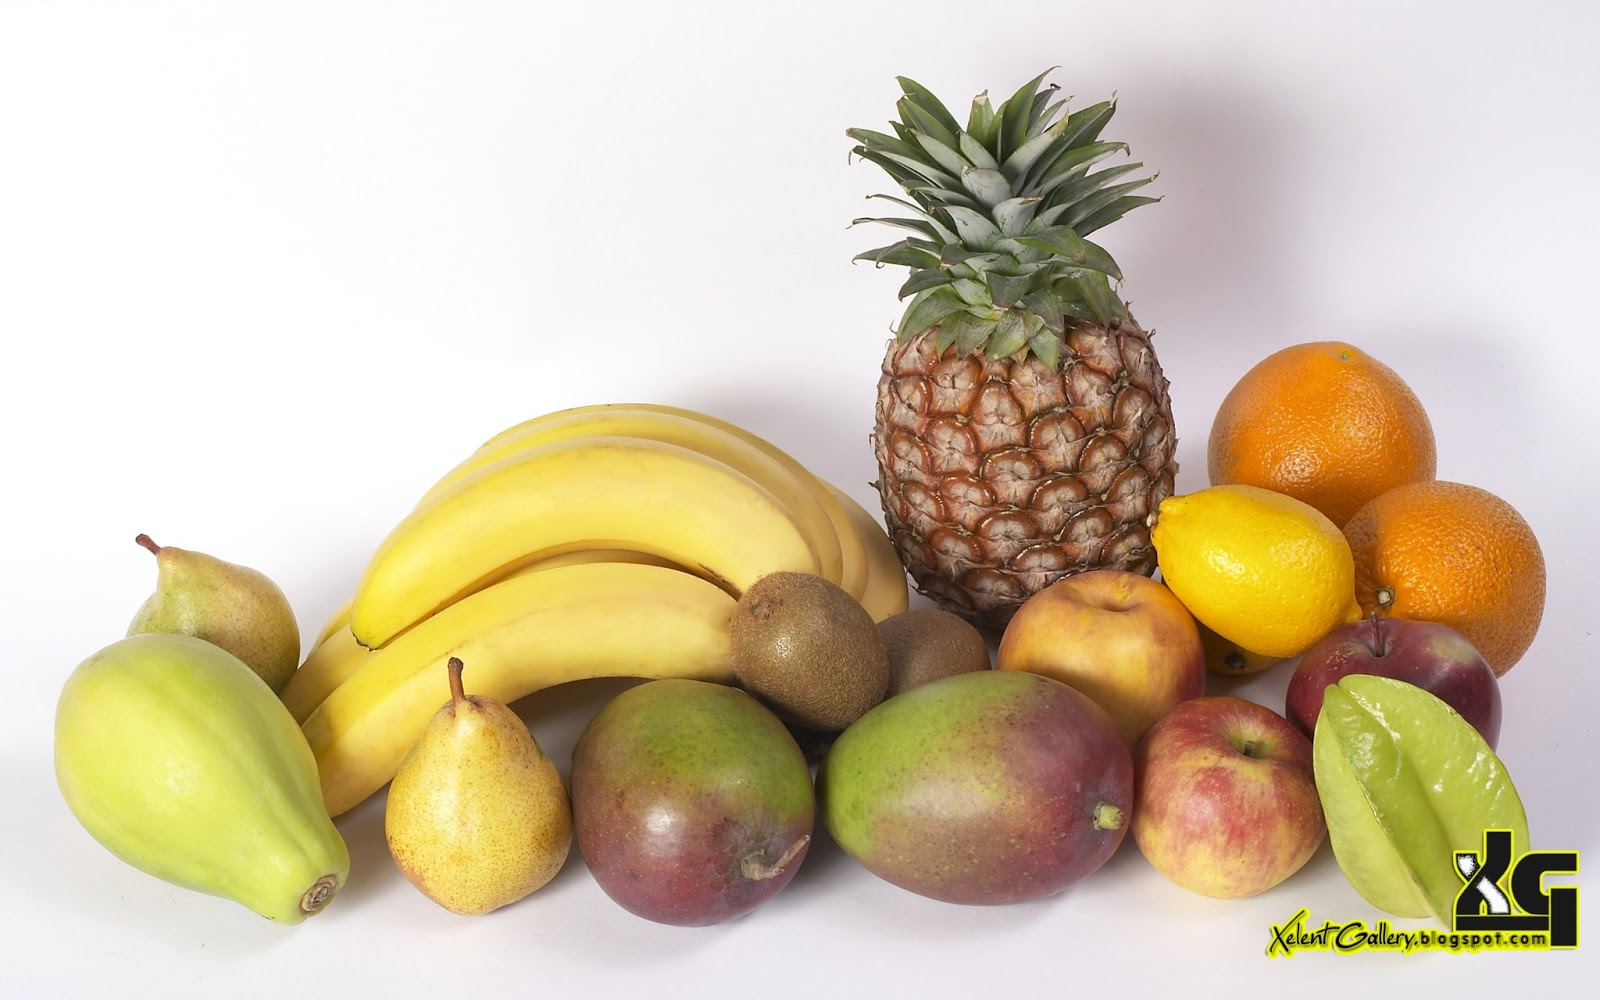 http://3.bp.blogspot.com/-v5jQlggCRaQ/UO3mwryPKtI/AAAAAAAACSY/grJhzhr8Xys/s1600/HD+Fruits+Wallpapers+%252812%2529.JPG